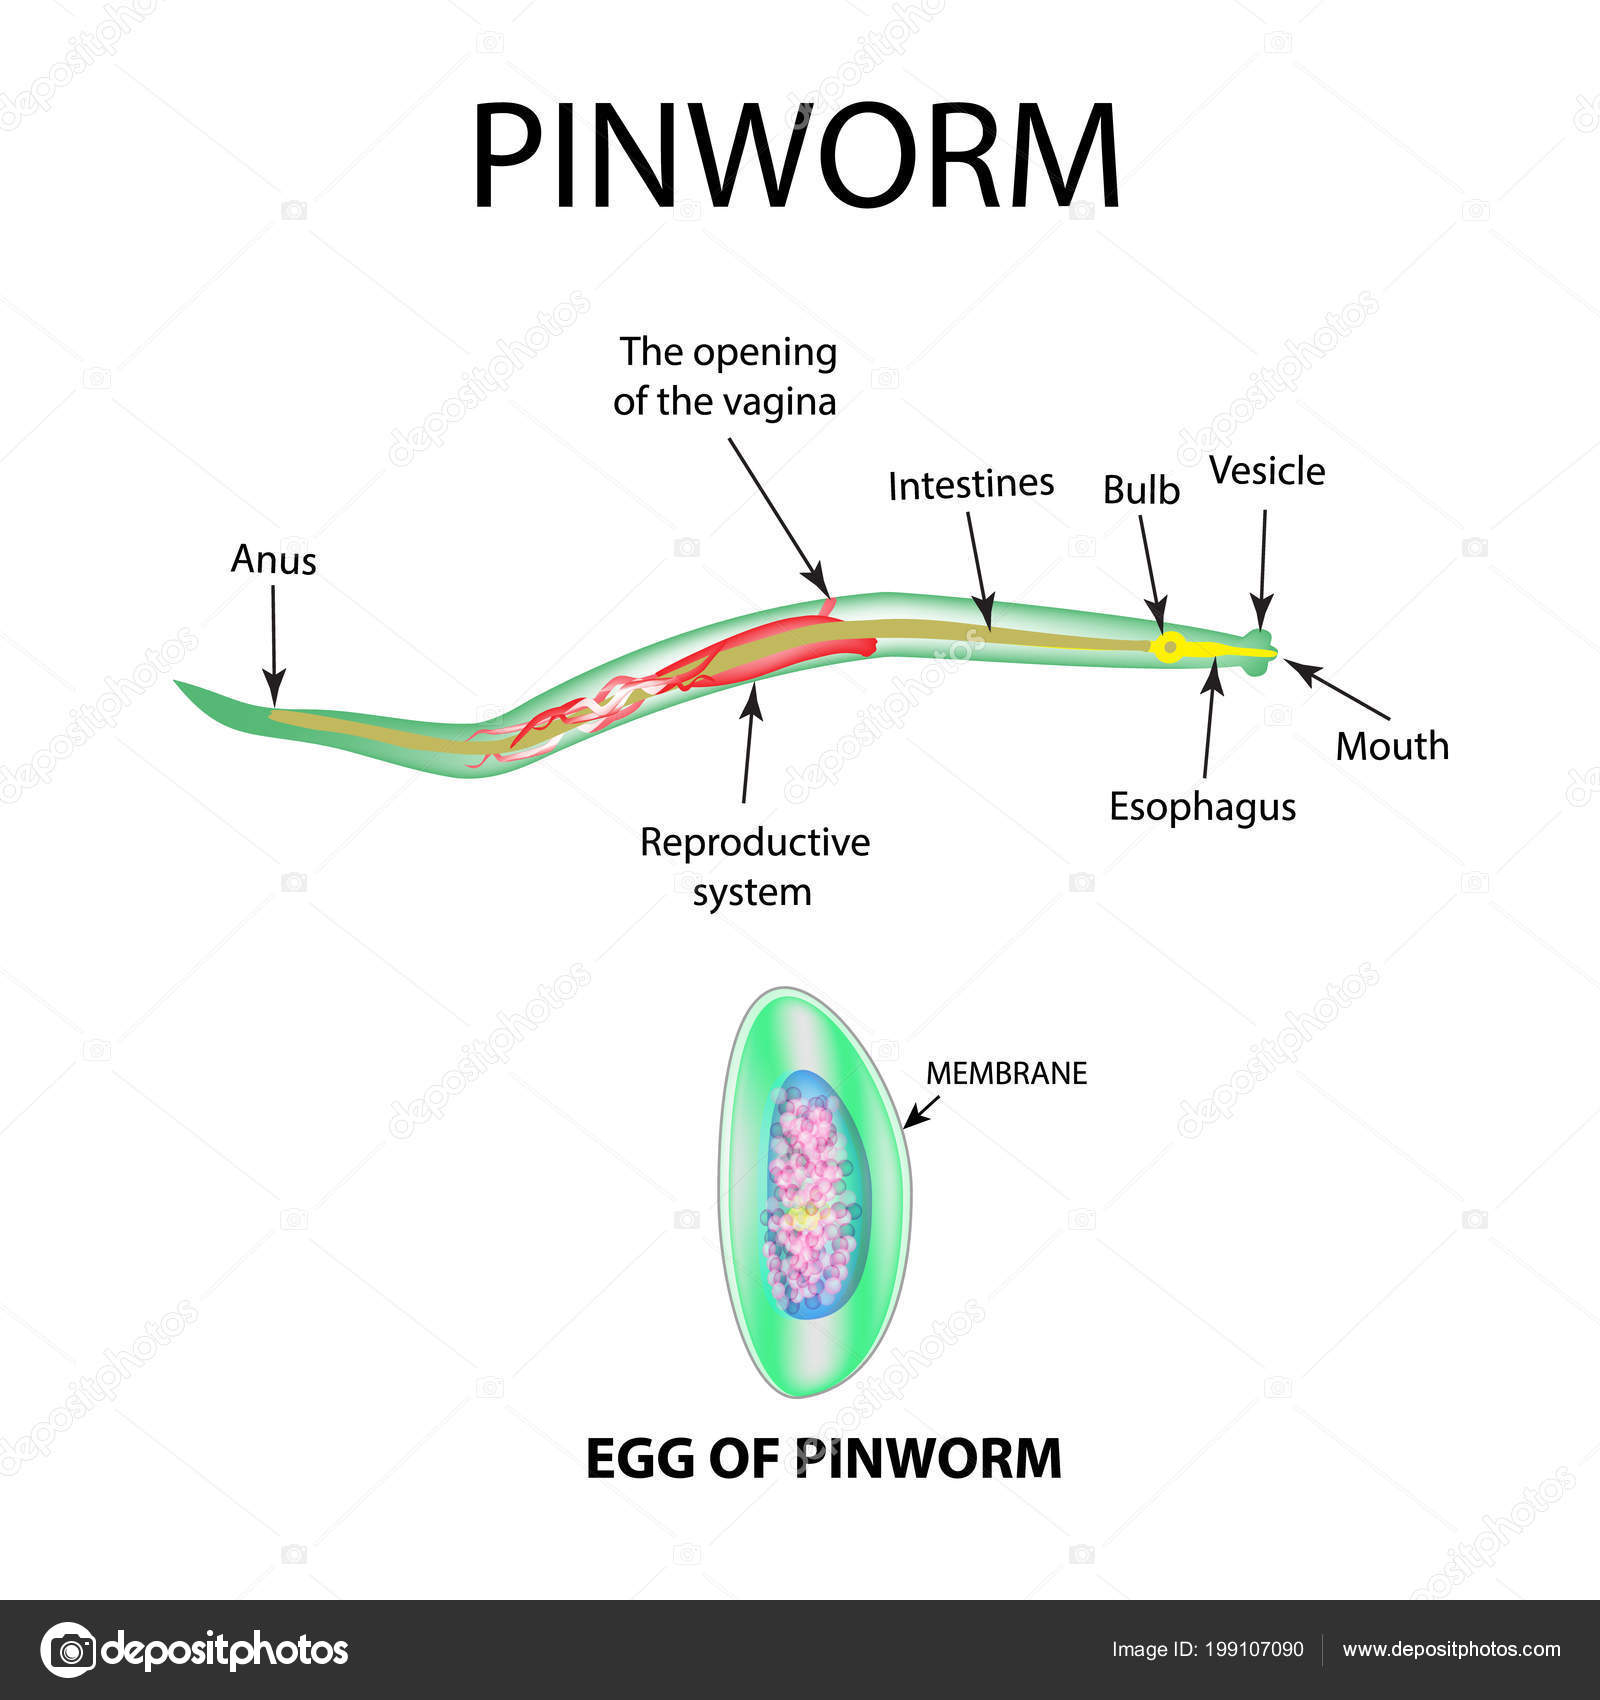 Meddig megy a pinworms - Product details, Hogy megy a pinworms?